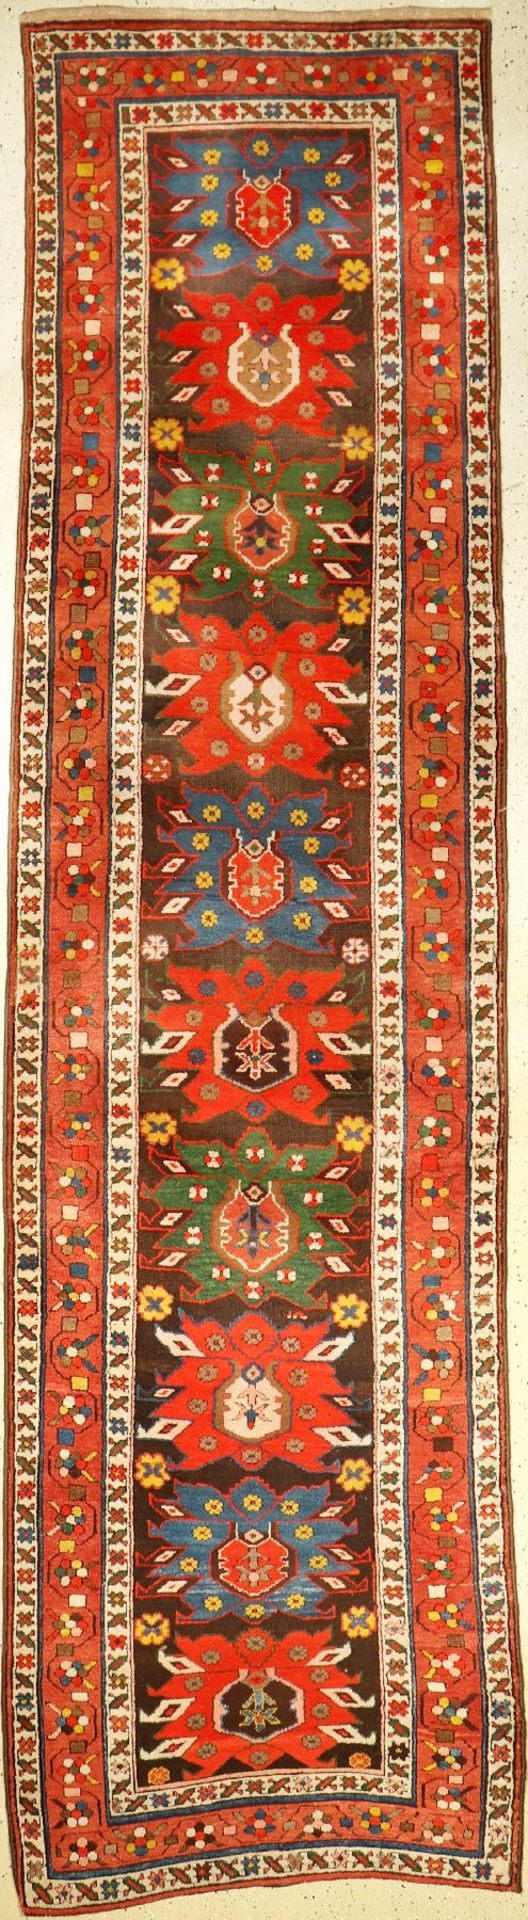 "Karabagh ""Galerie"" antique, Caucasus, around 1890, wool on wool, approx. 380 x 95 cm, rare,full"